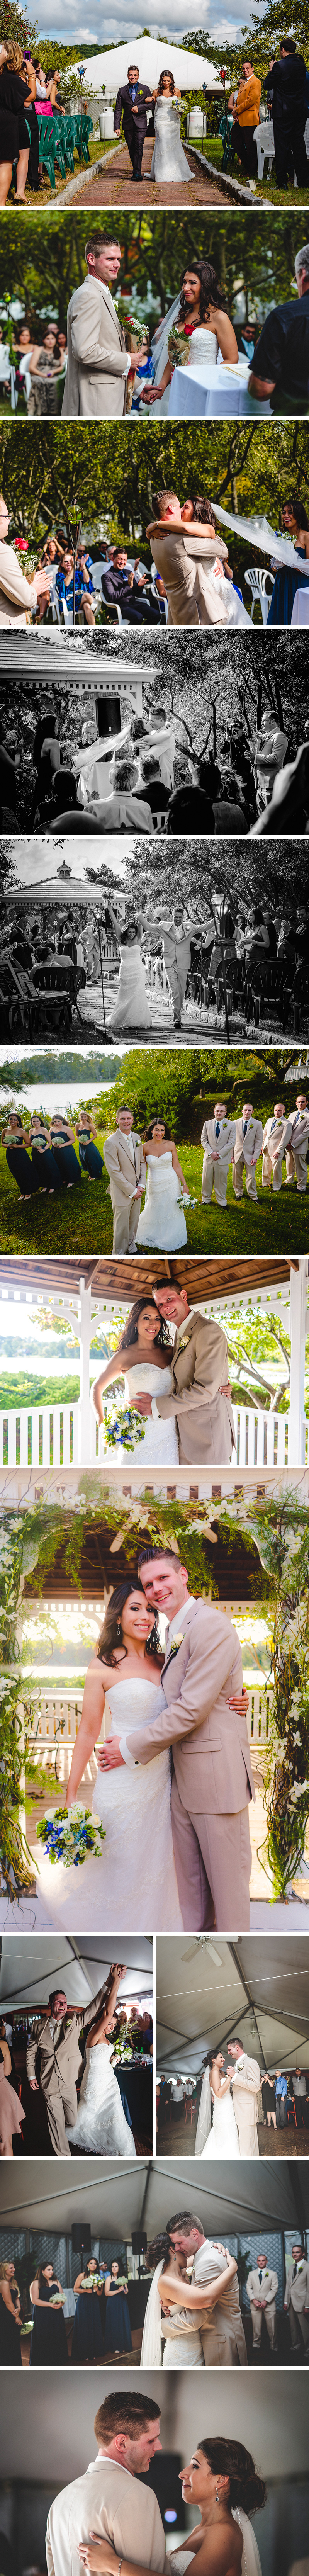 The Wedding of Vanessa Alvarez and Conrad Segelbacher in Congers, New York at La Triestina